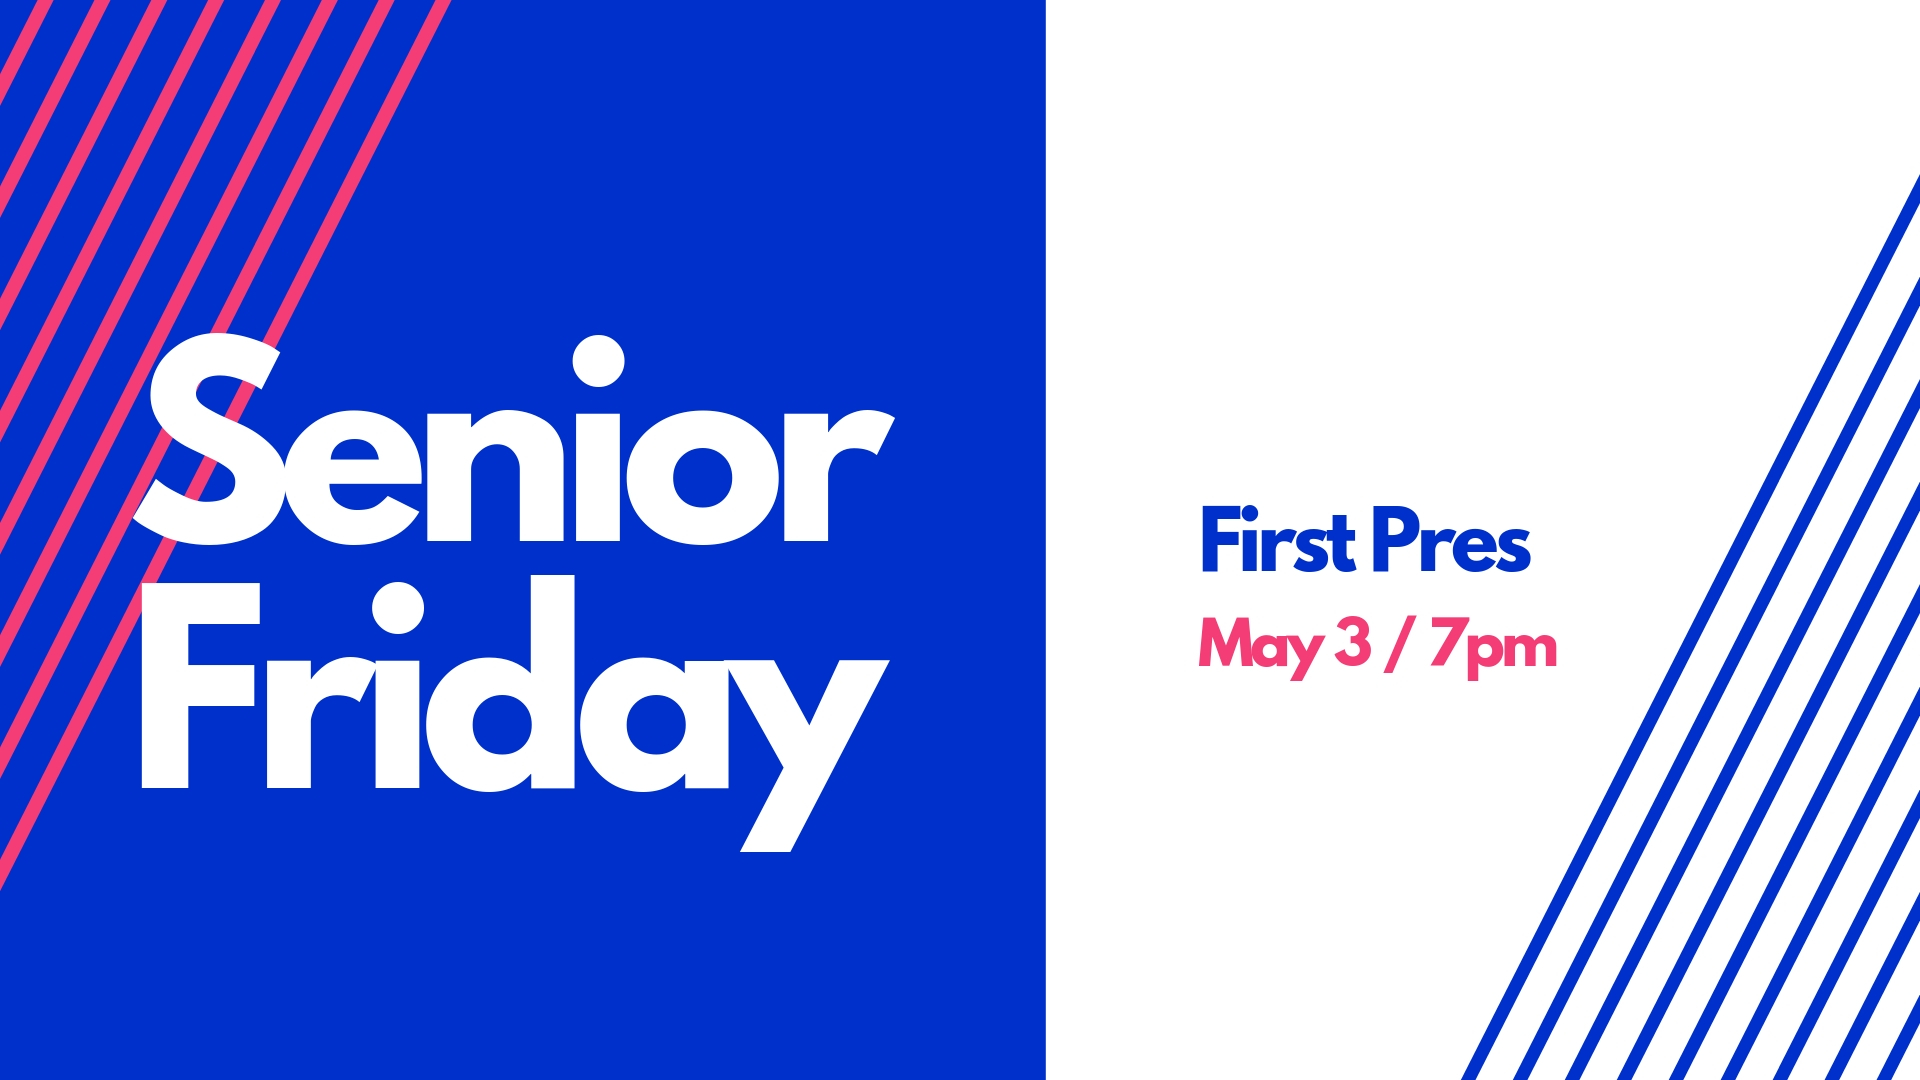 SeniorFriday_20190503_splash.jpg